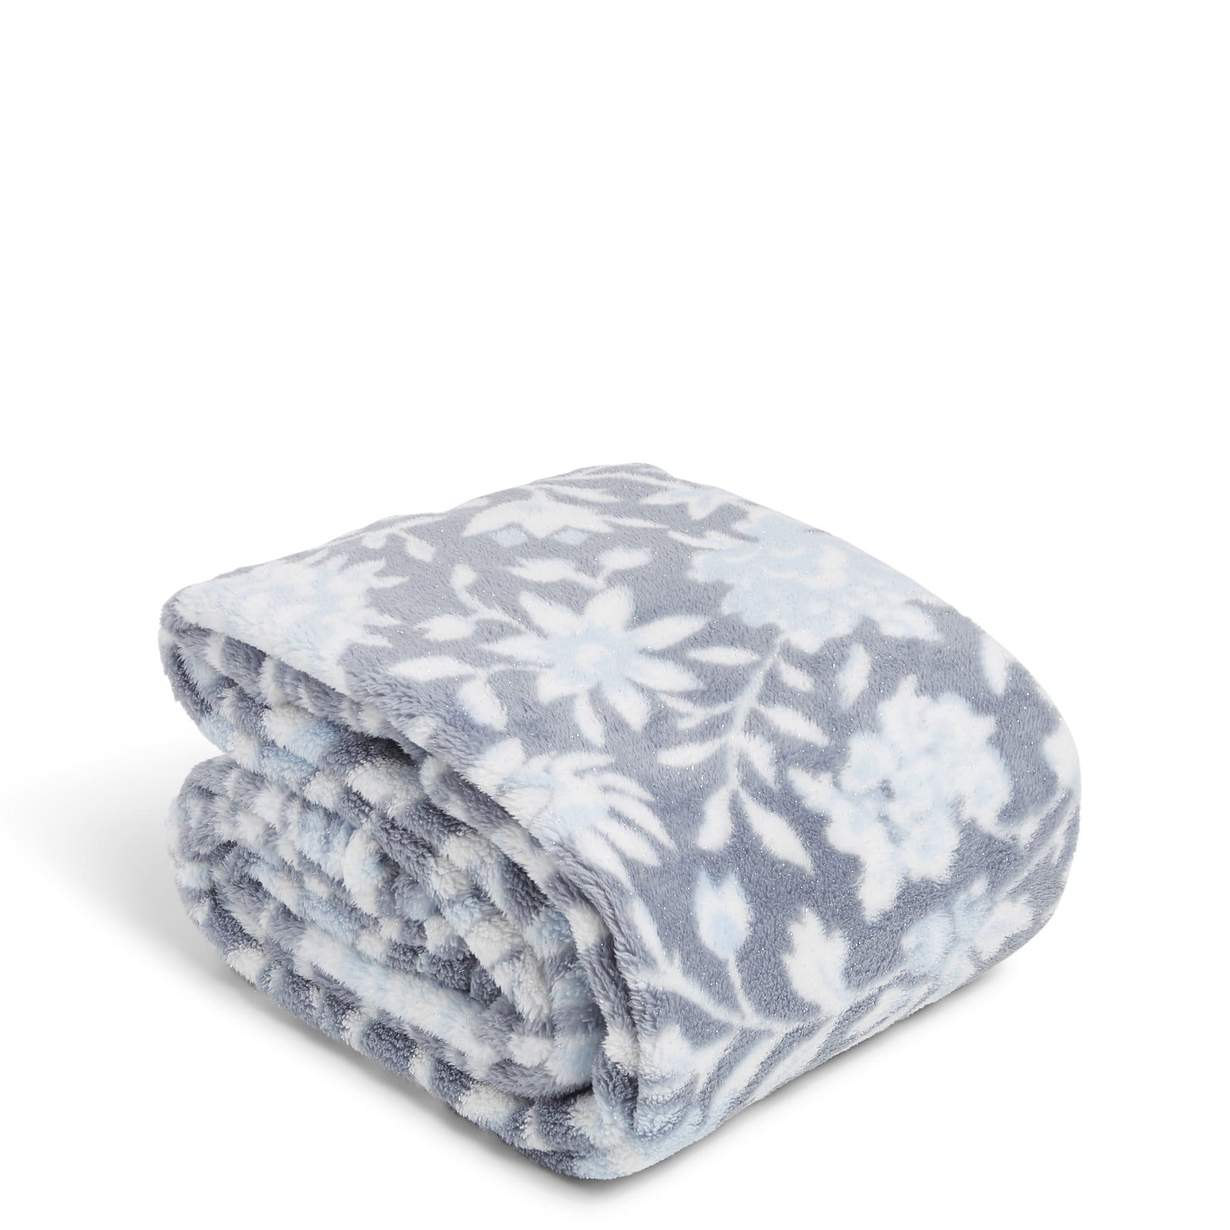 Plush Shimmer Throw Blanket-Frosted Lace-Vera Bradley